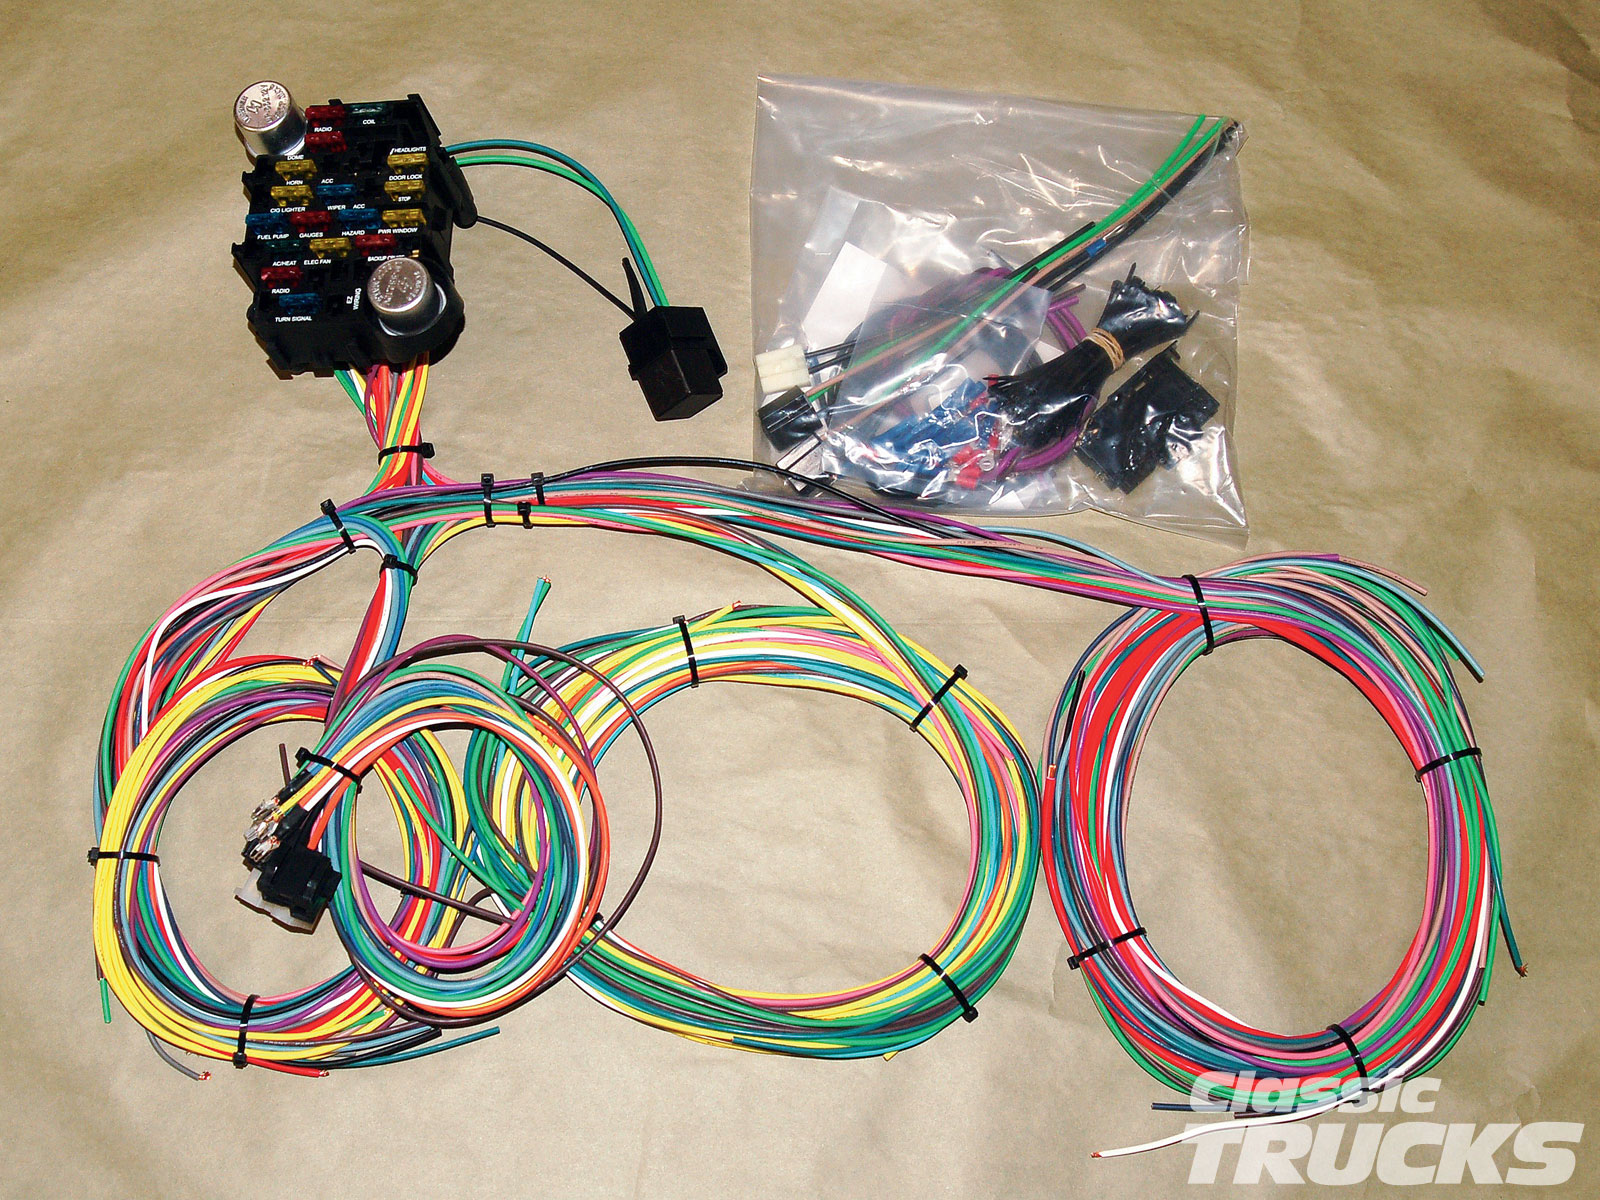 1010clt 02 o aftermarket wiring harness install kit?resize\\\=665%2C499 painless wiring harness australia tamahuproject org universal wiring harness australia at gsmx.co